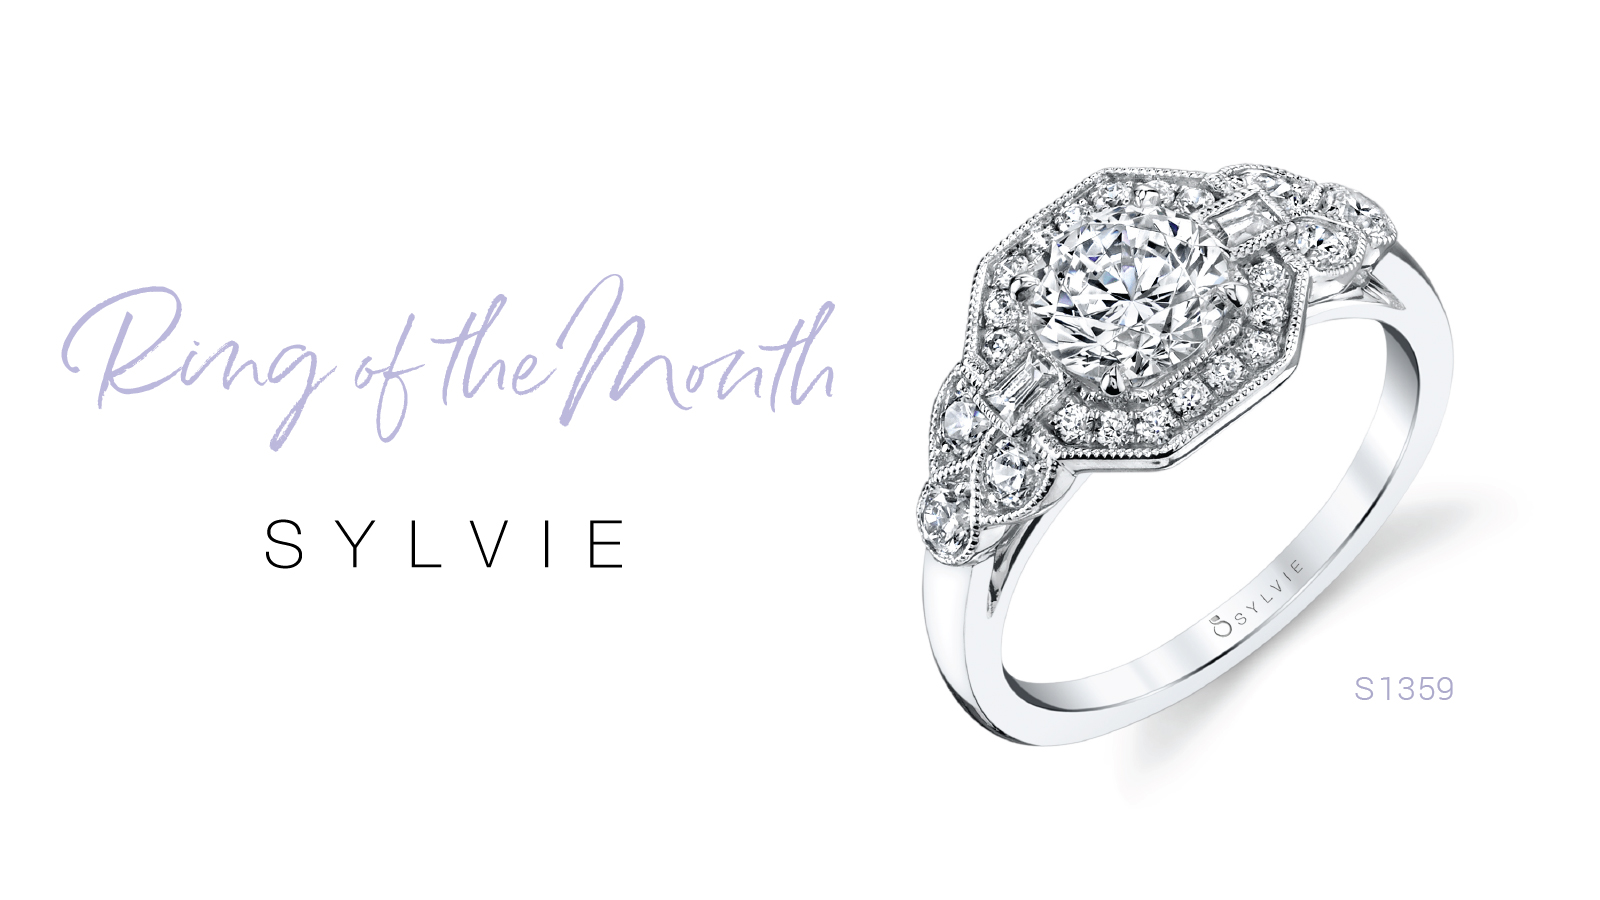 Sylvie's Ring of the Month - Vintage Inspired Engagement Ring